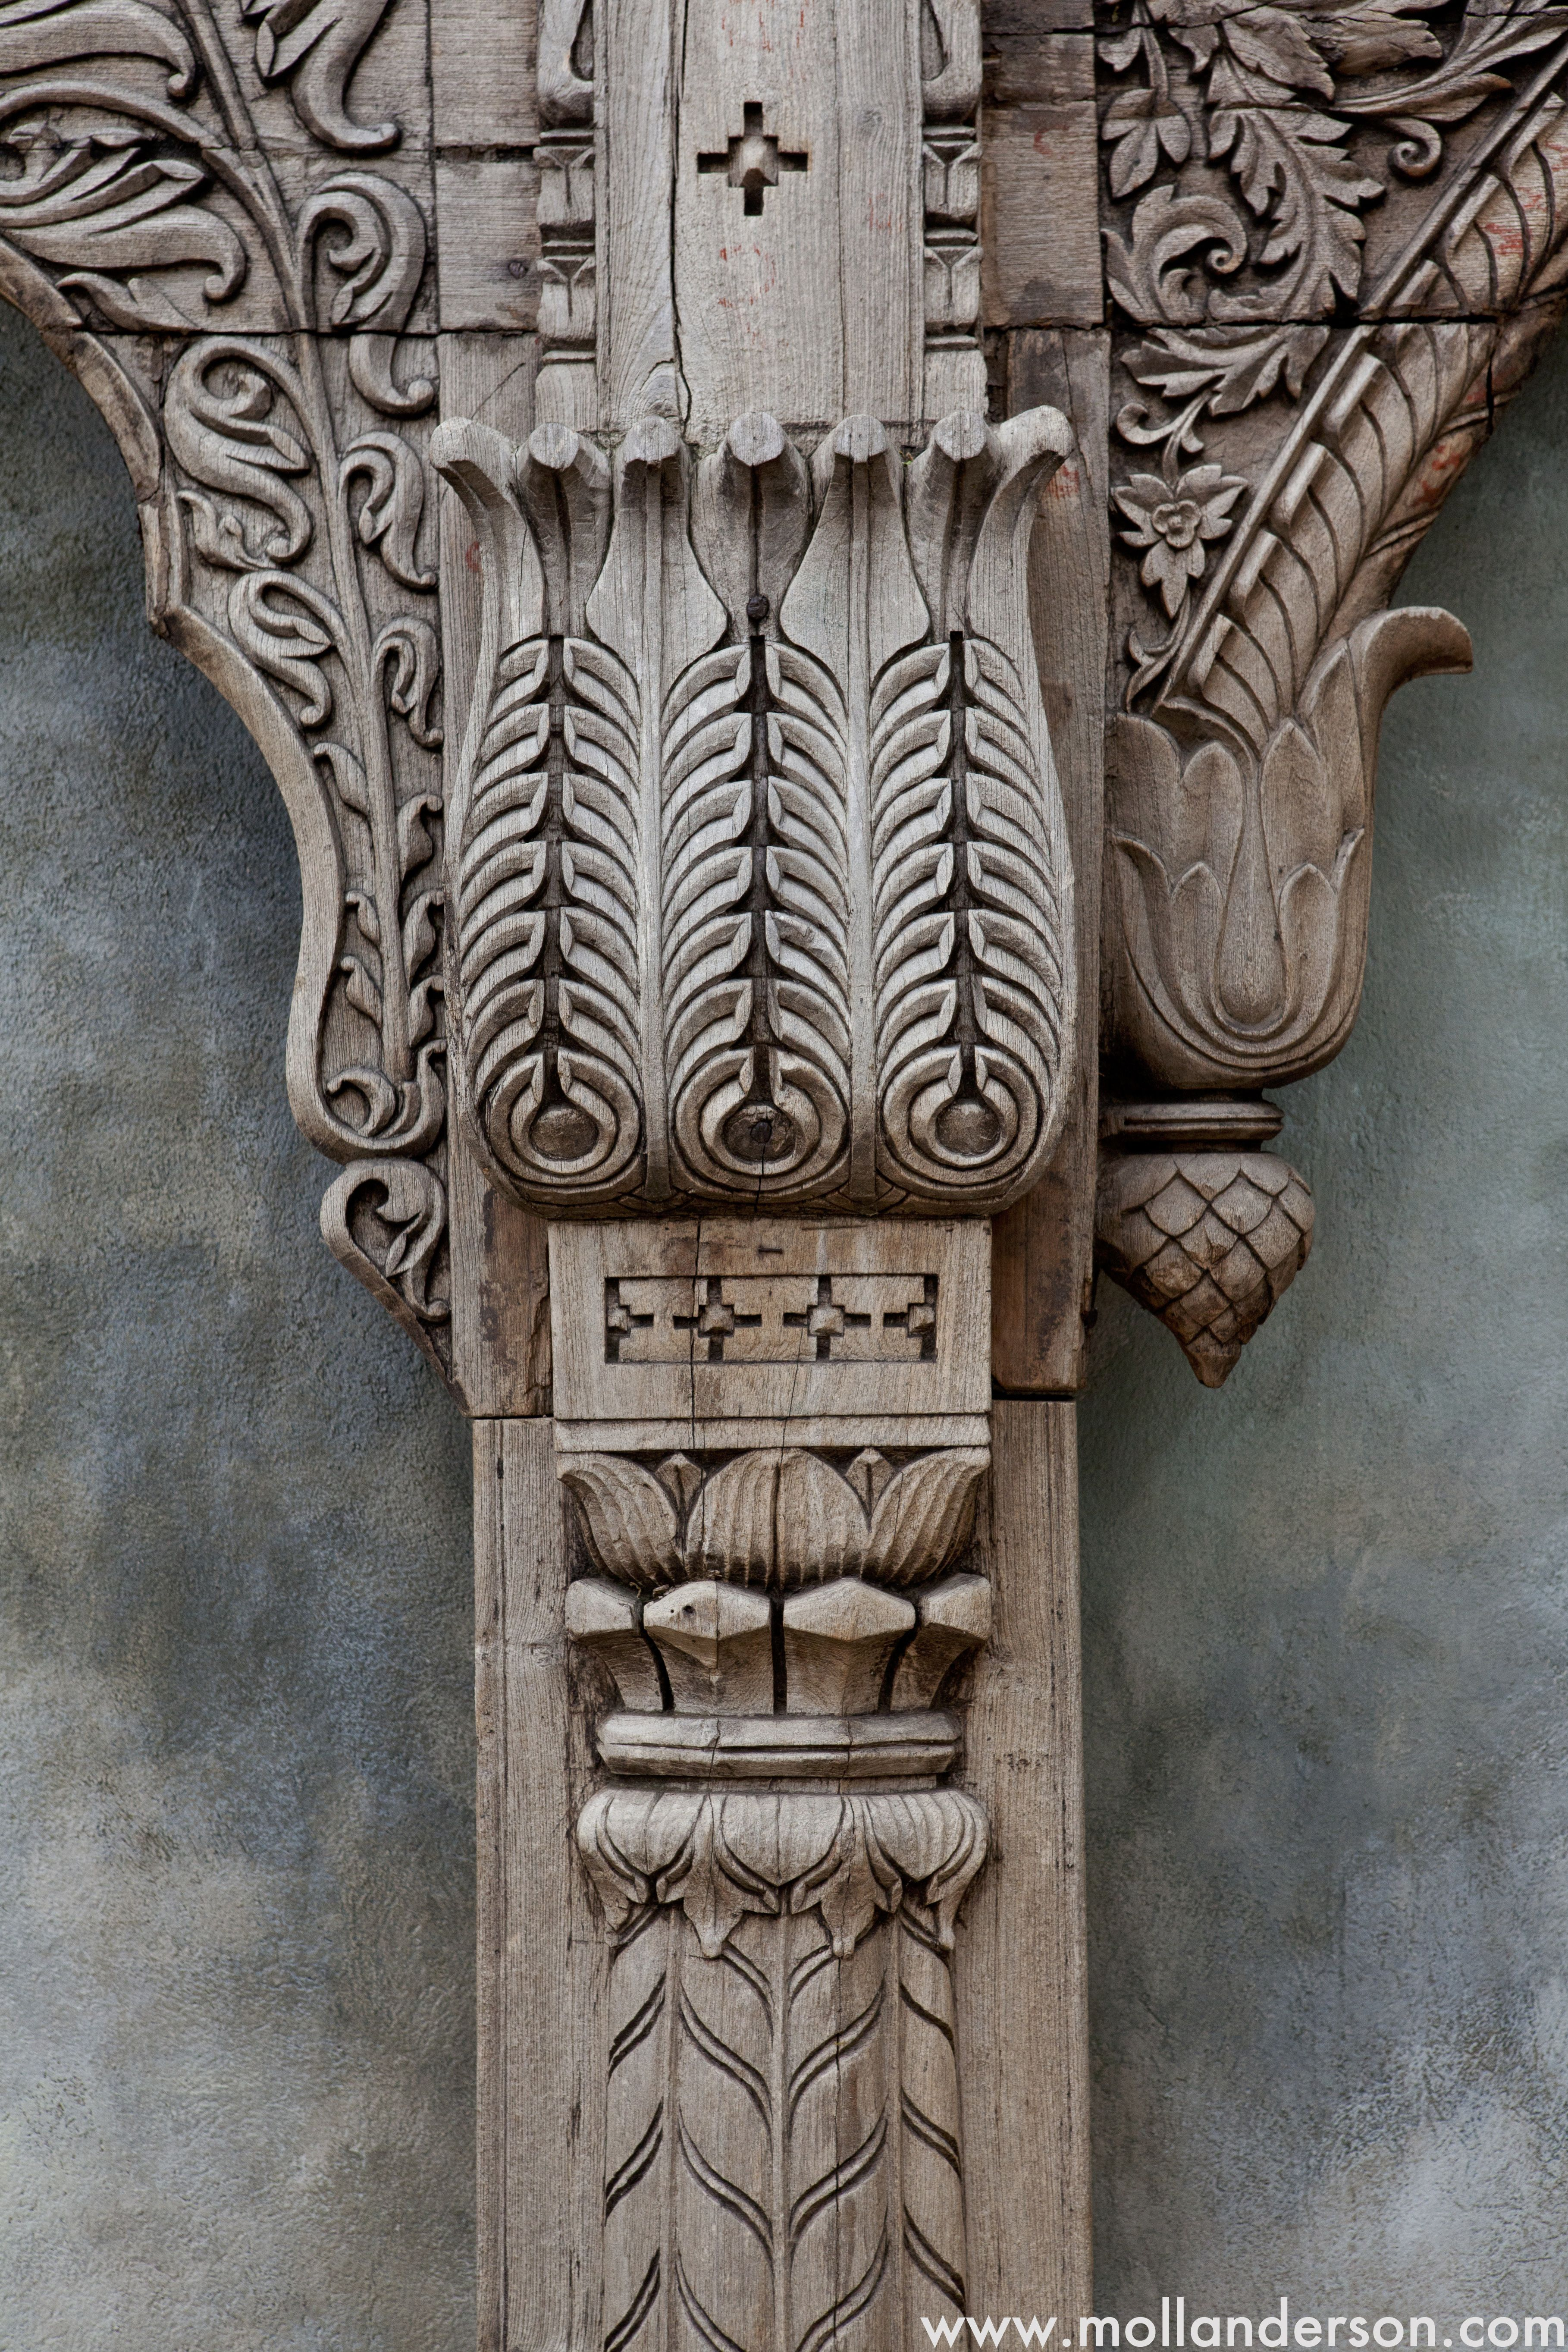 The detailed work in this old archway makes piece